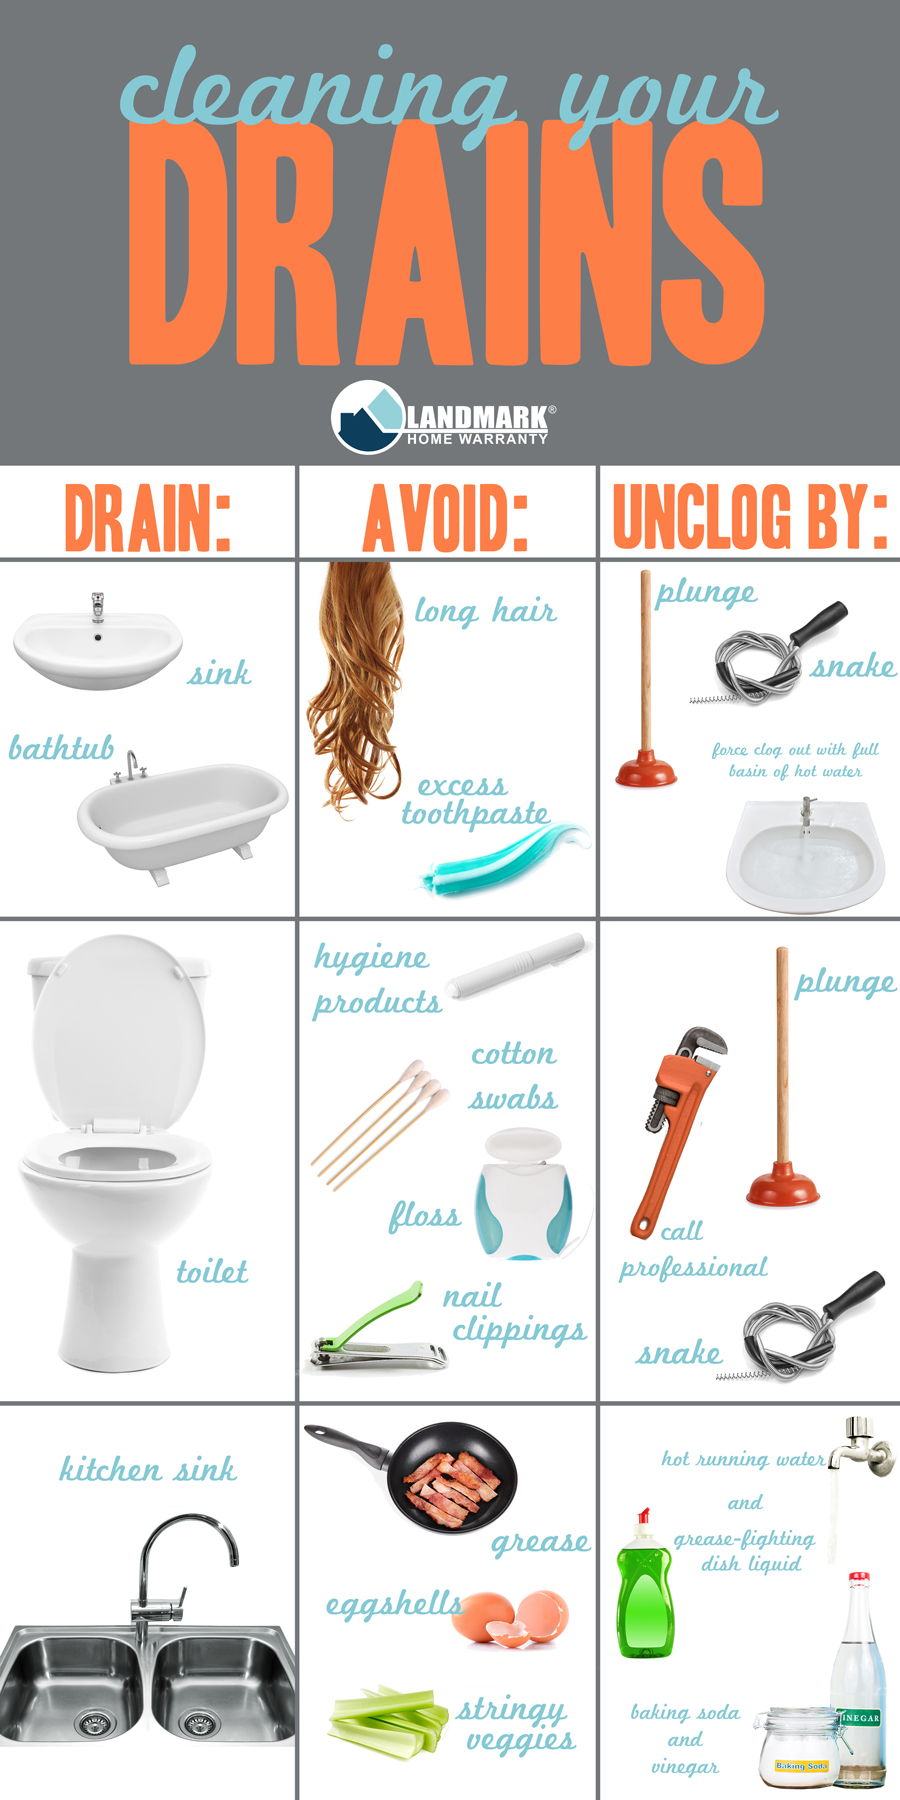 the best way to clean your drains